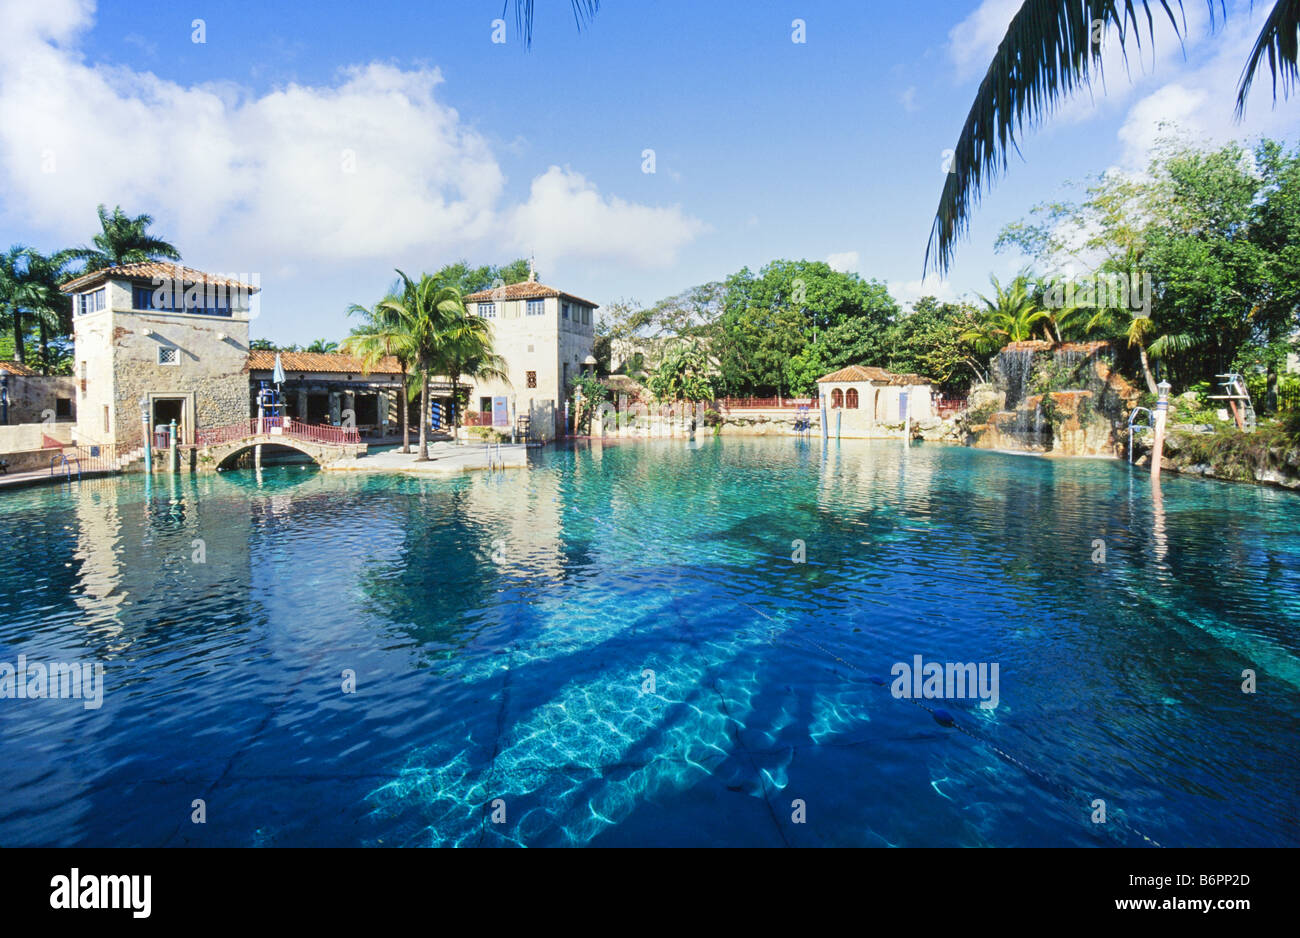 Venetion Pool, public swimming pool, Coral Gables, - Stock Image